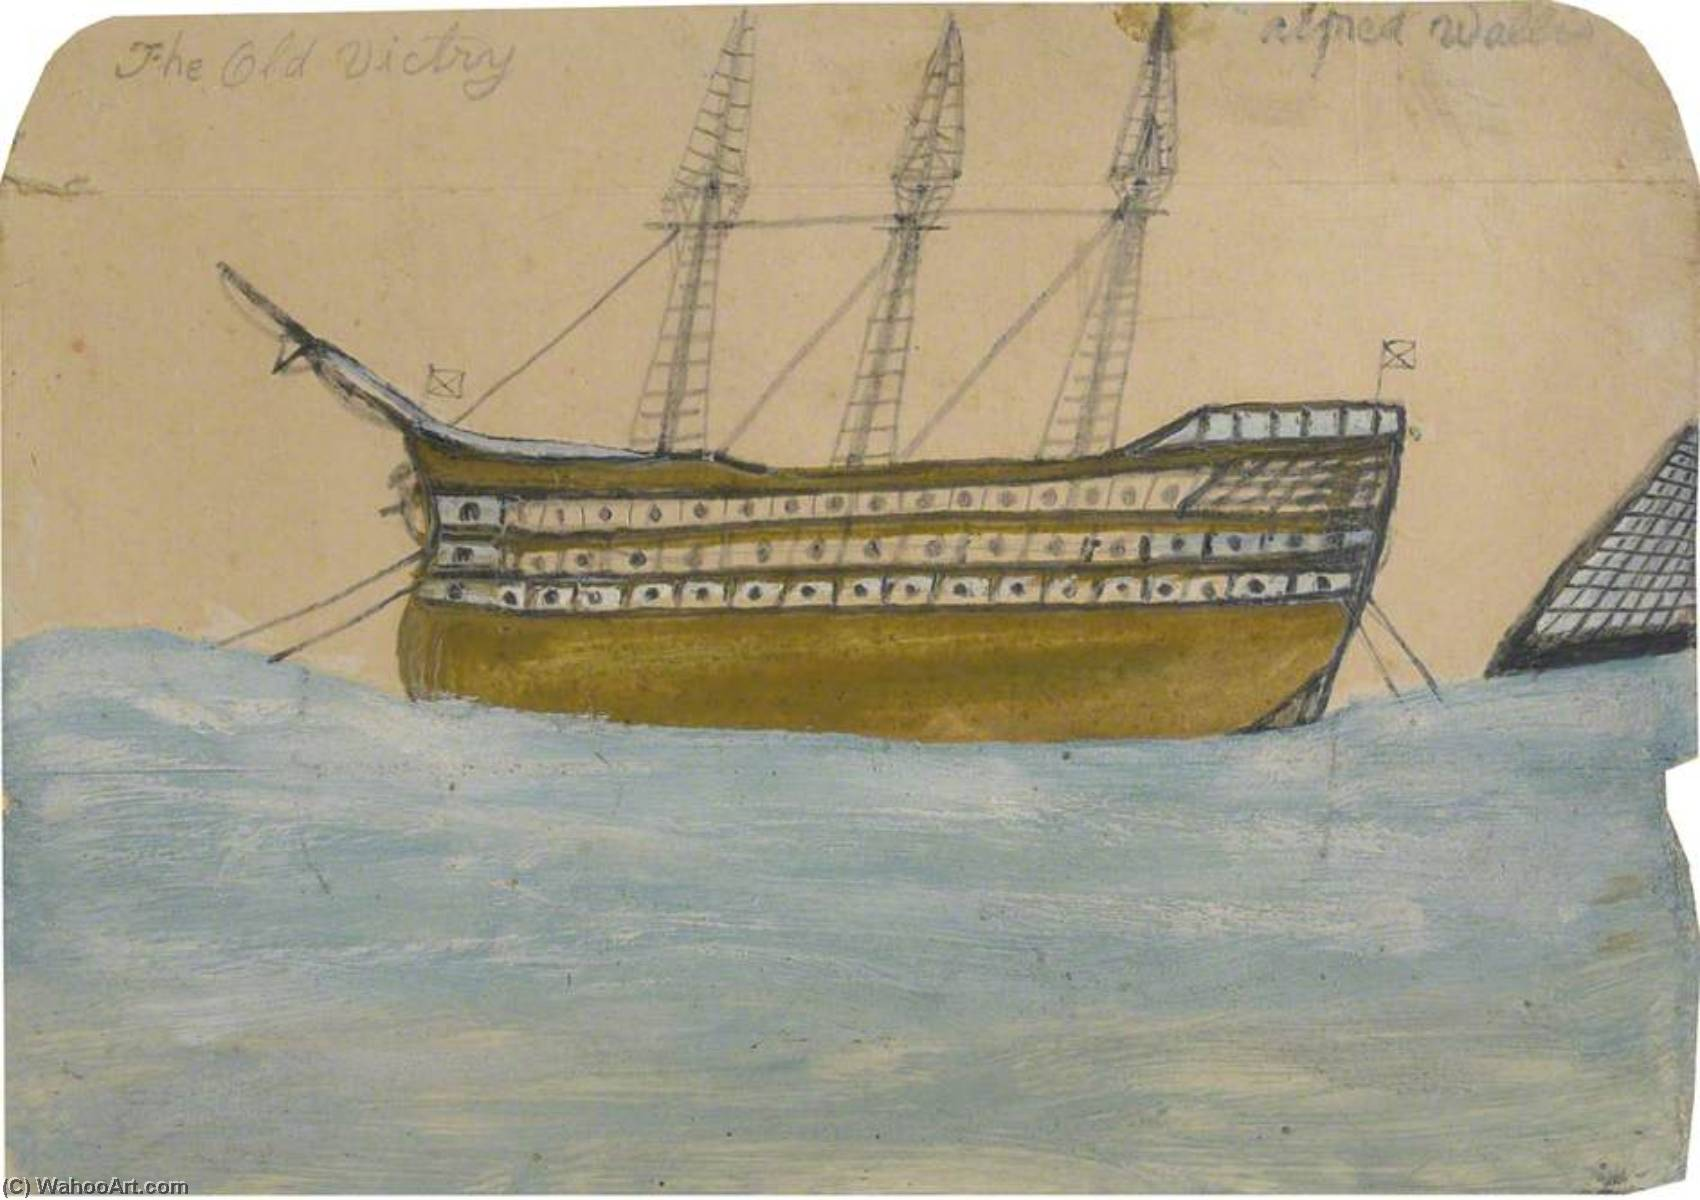 The Old Victry, HMS 'Victory', Graphite by Alfred Wallis (1855-1942, United Kingdom)